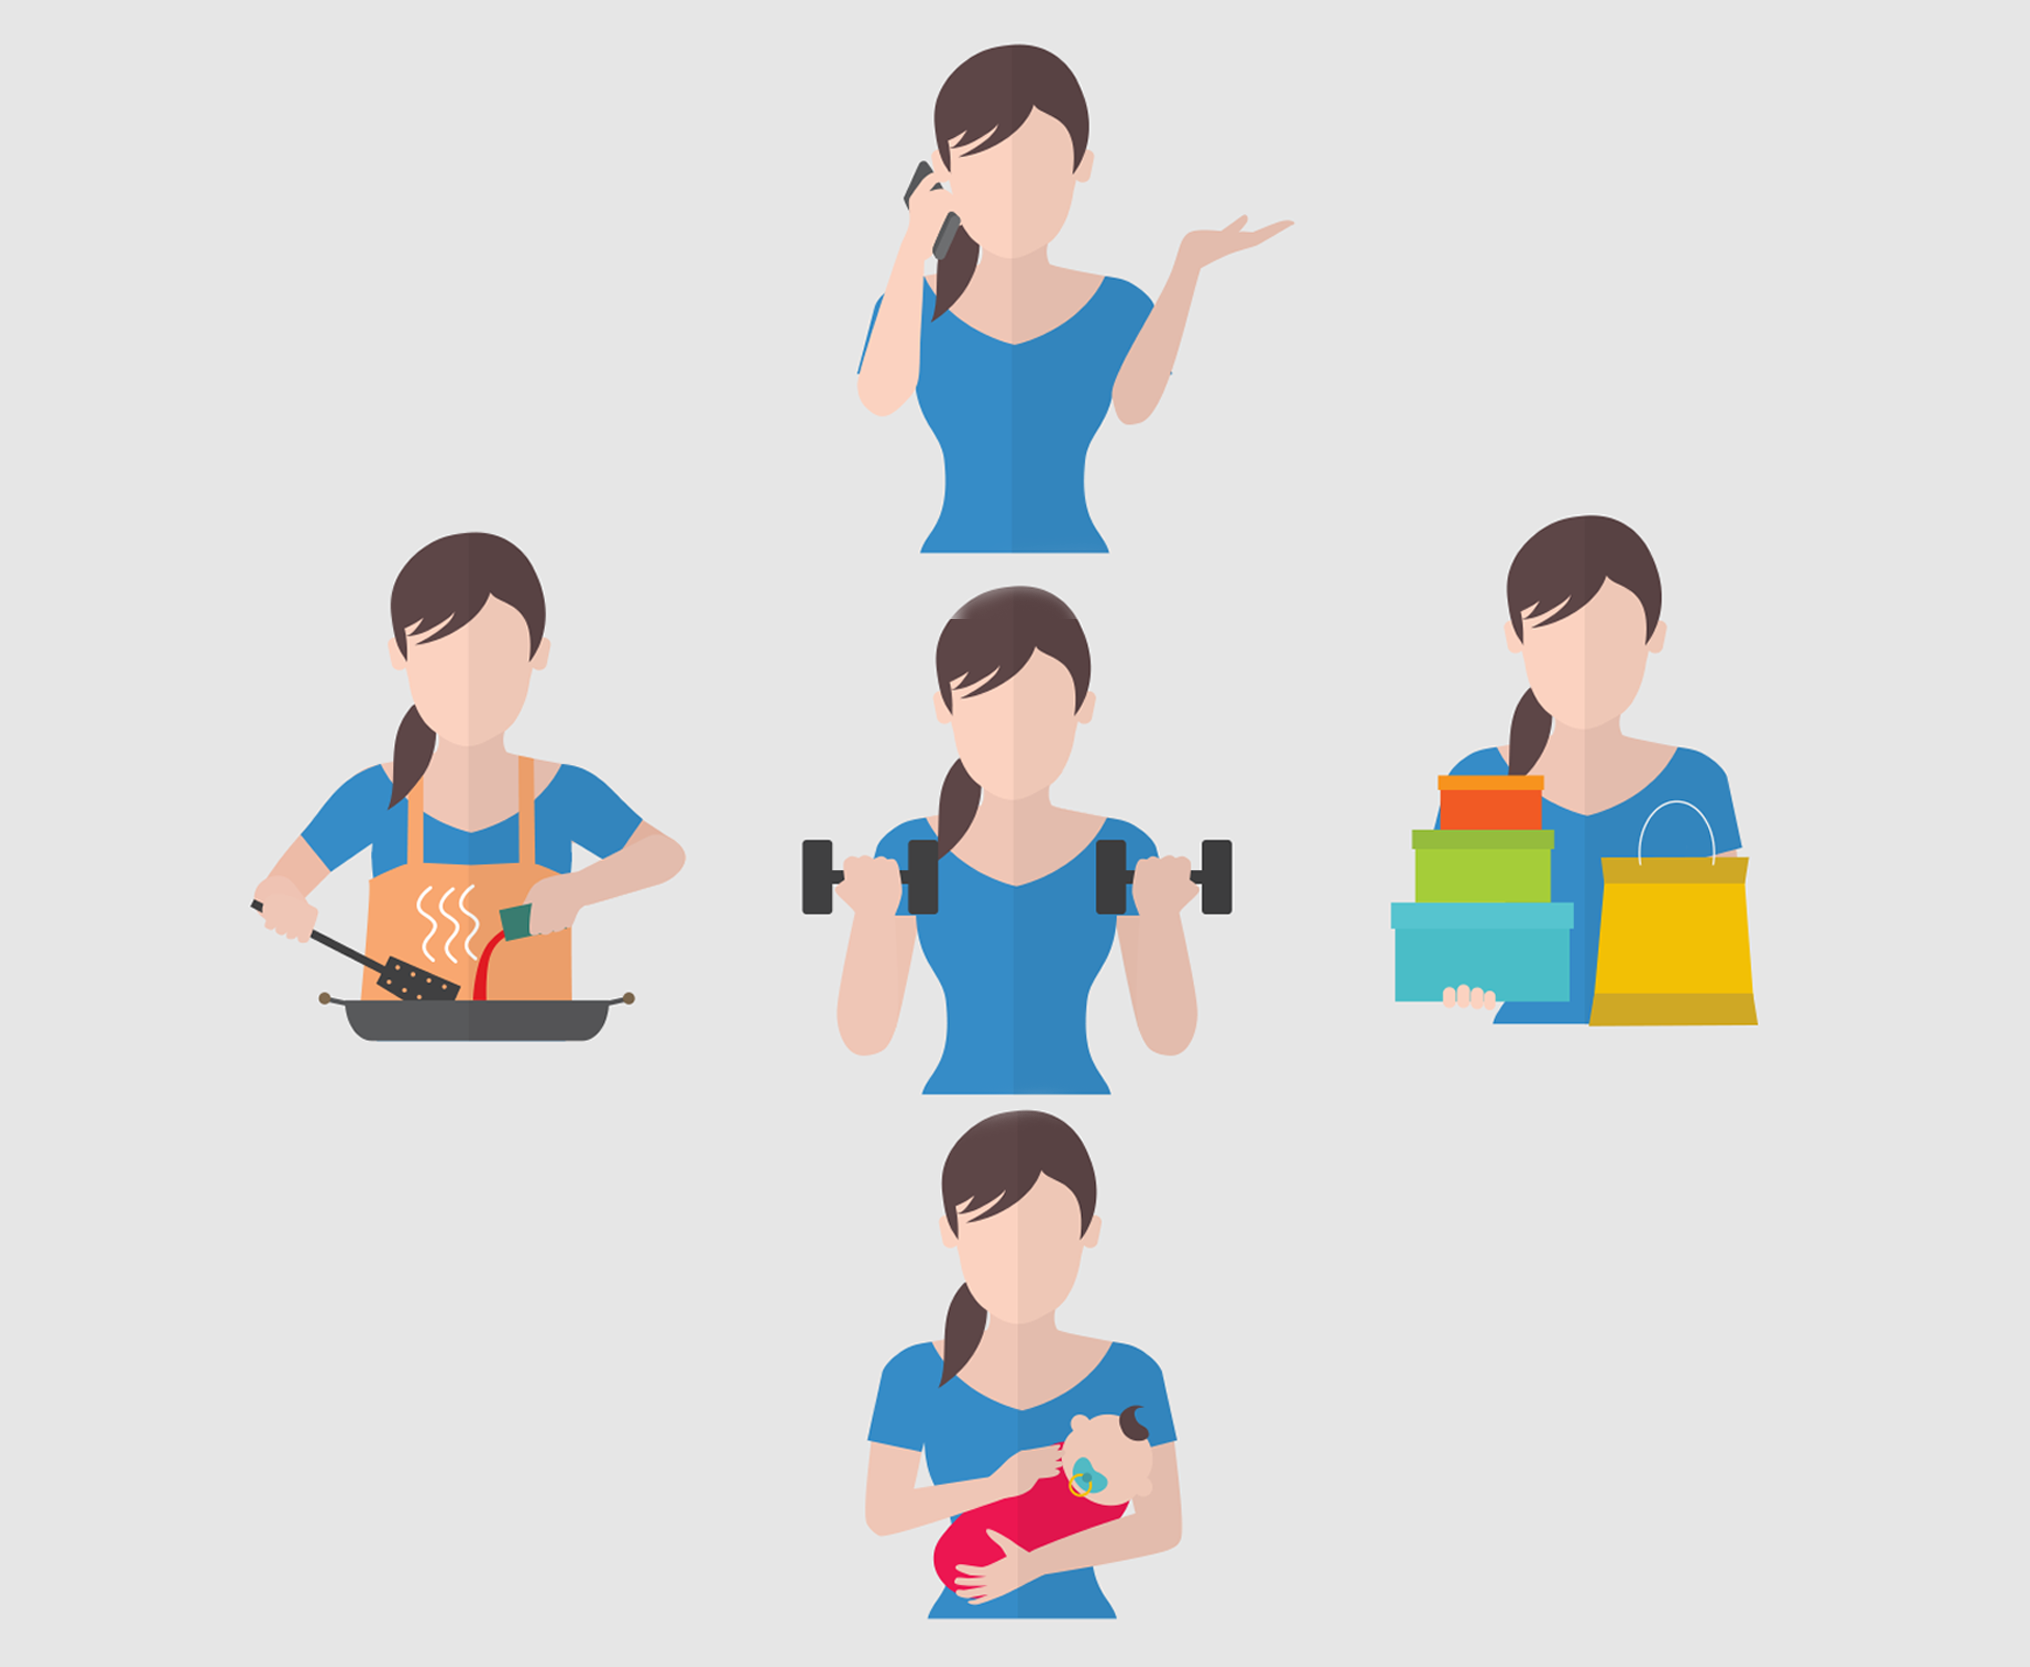 Graphic of 5 women doing different tasks